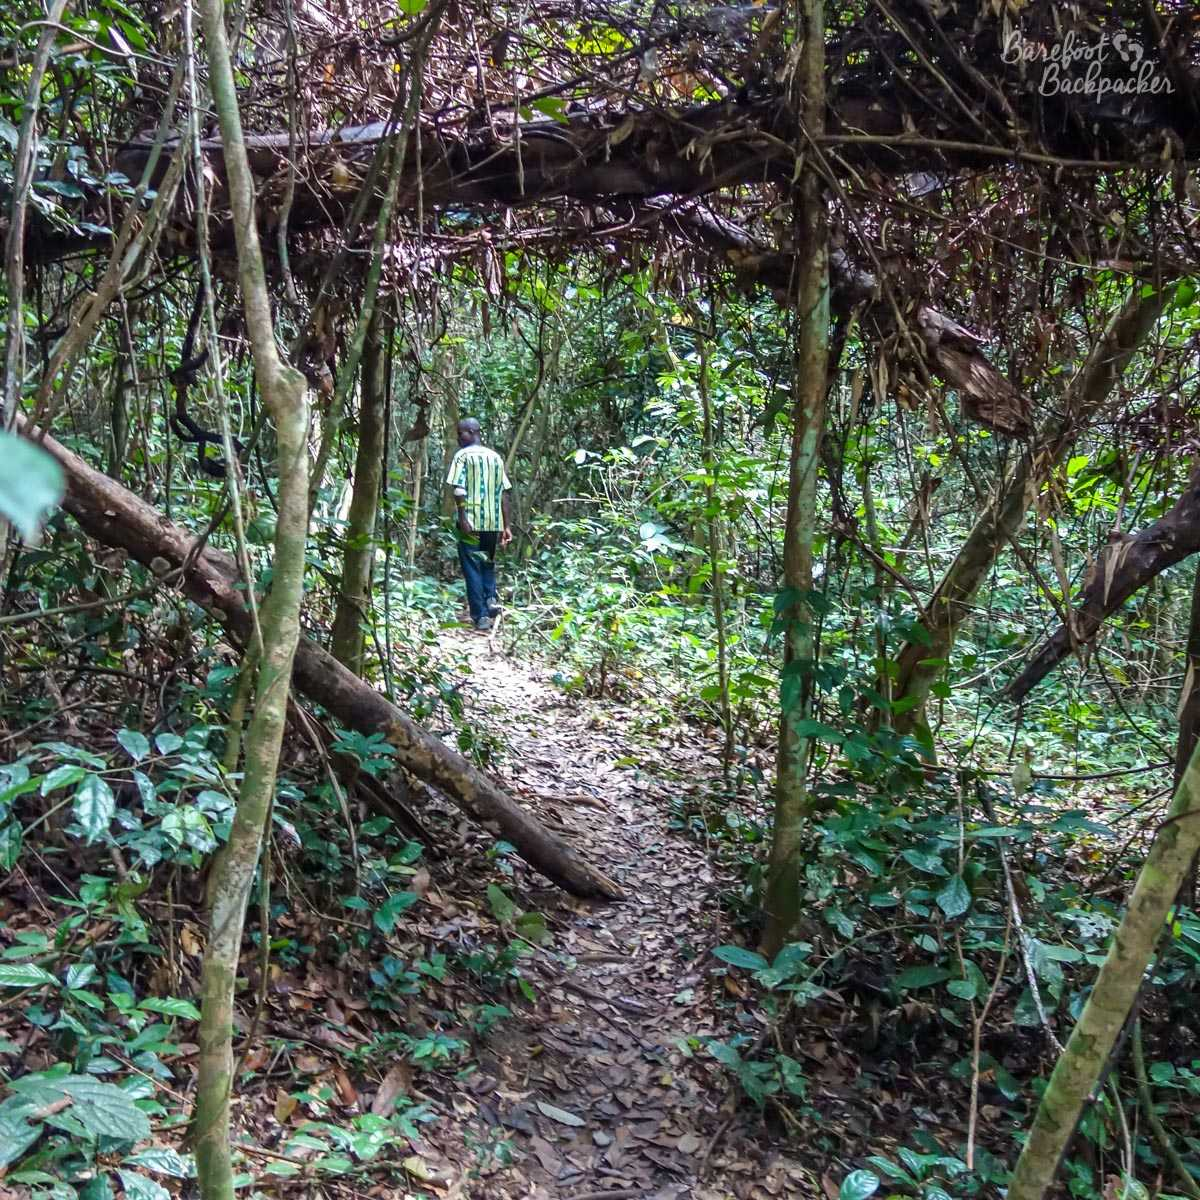 The rainforest walk in Kakum National Park, Ghana